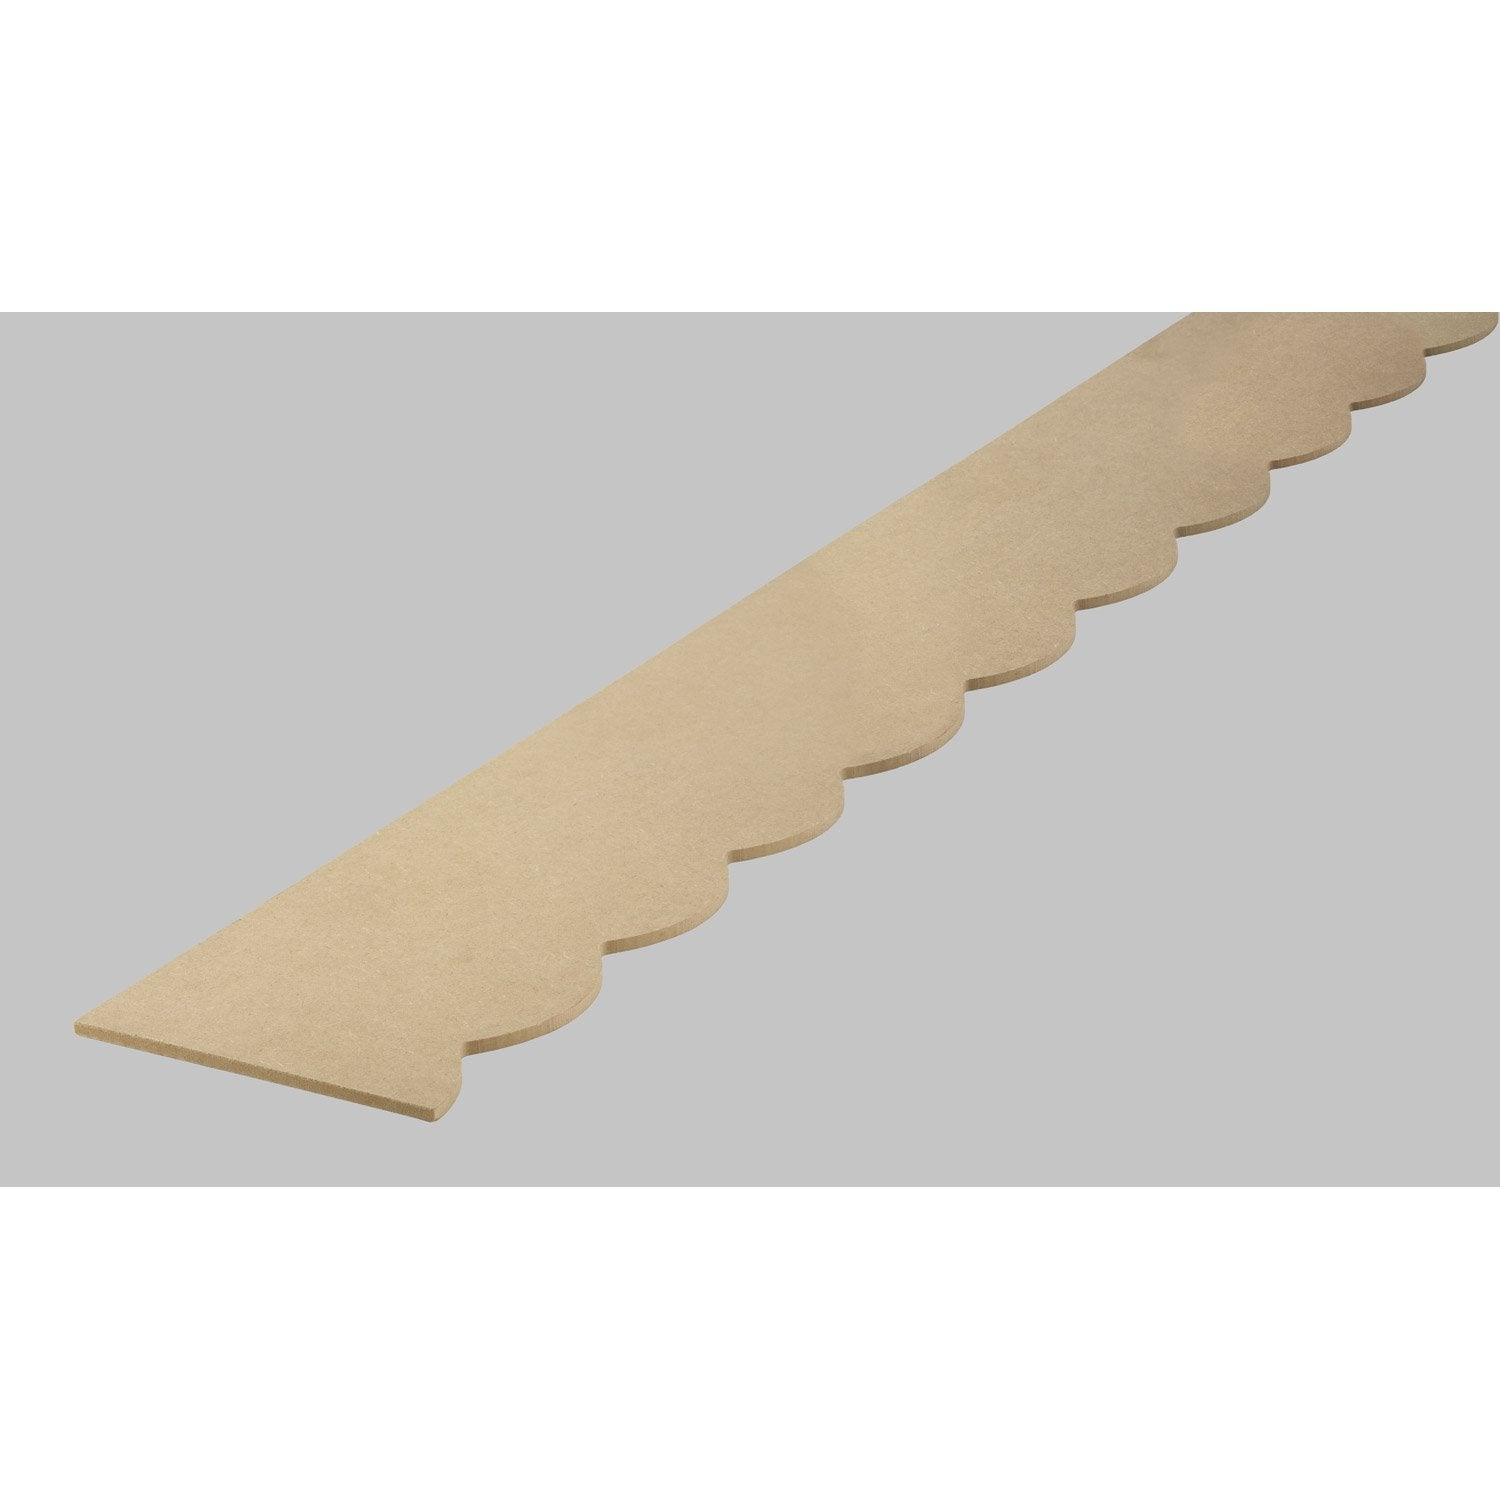 frise savoie en mdf brut 198cm section 18x6mm leroy merlin